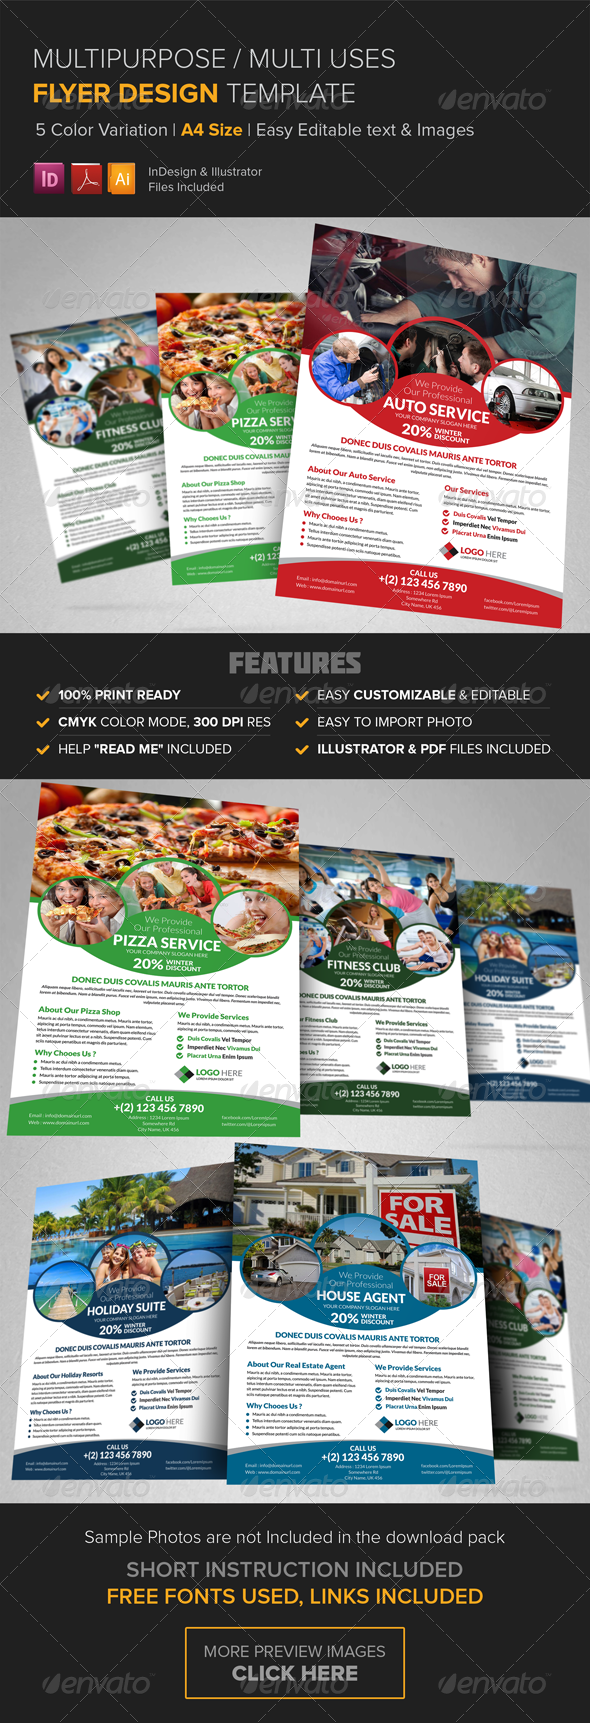 GraphicRiver Multipurpose Business Flyer Design Template 8532715